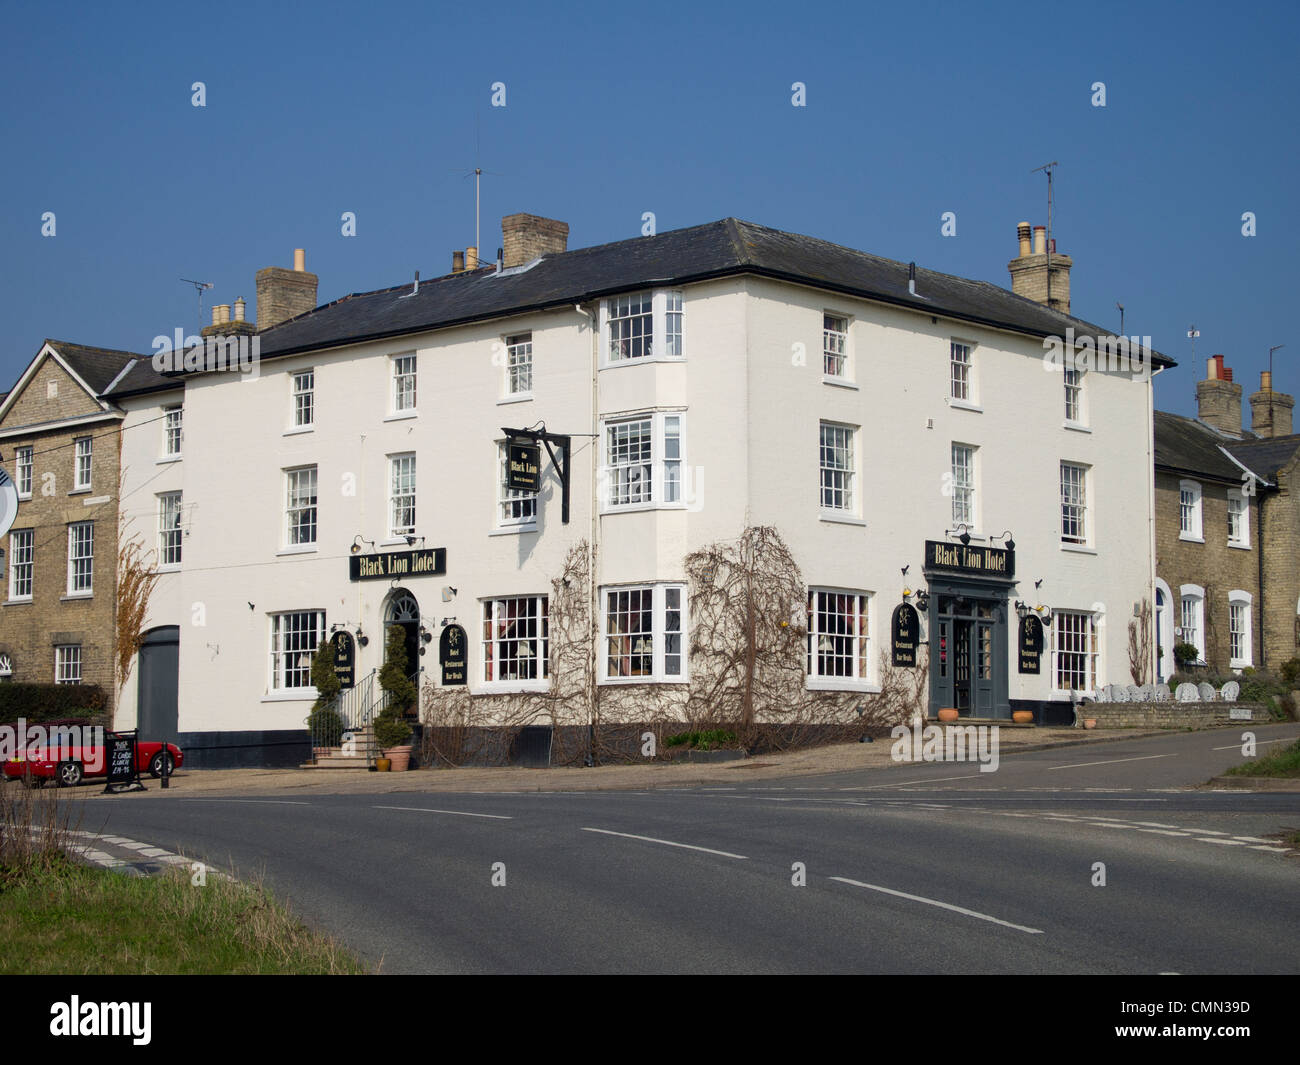 The Black Lion restaurant in Long Melford, Suffolk, England. - Stock Image